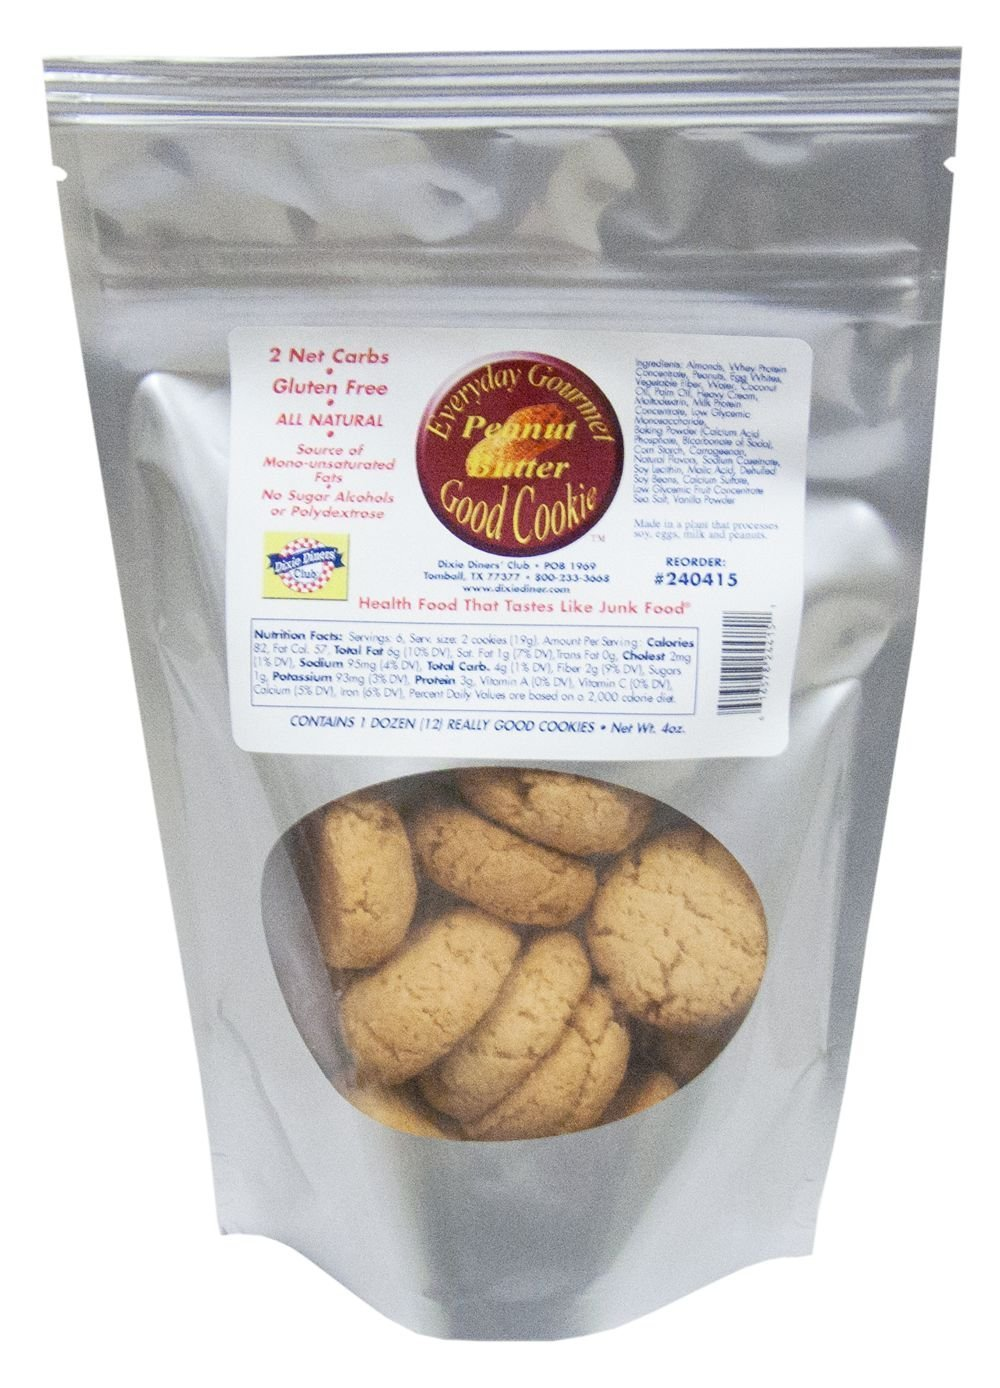 Dixie Carb Counters Peanut Butter Everyday Gourmet Good Cookie